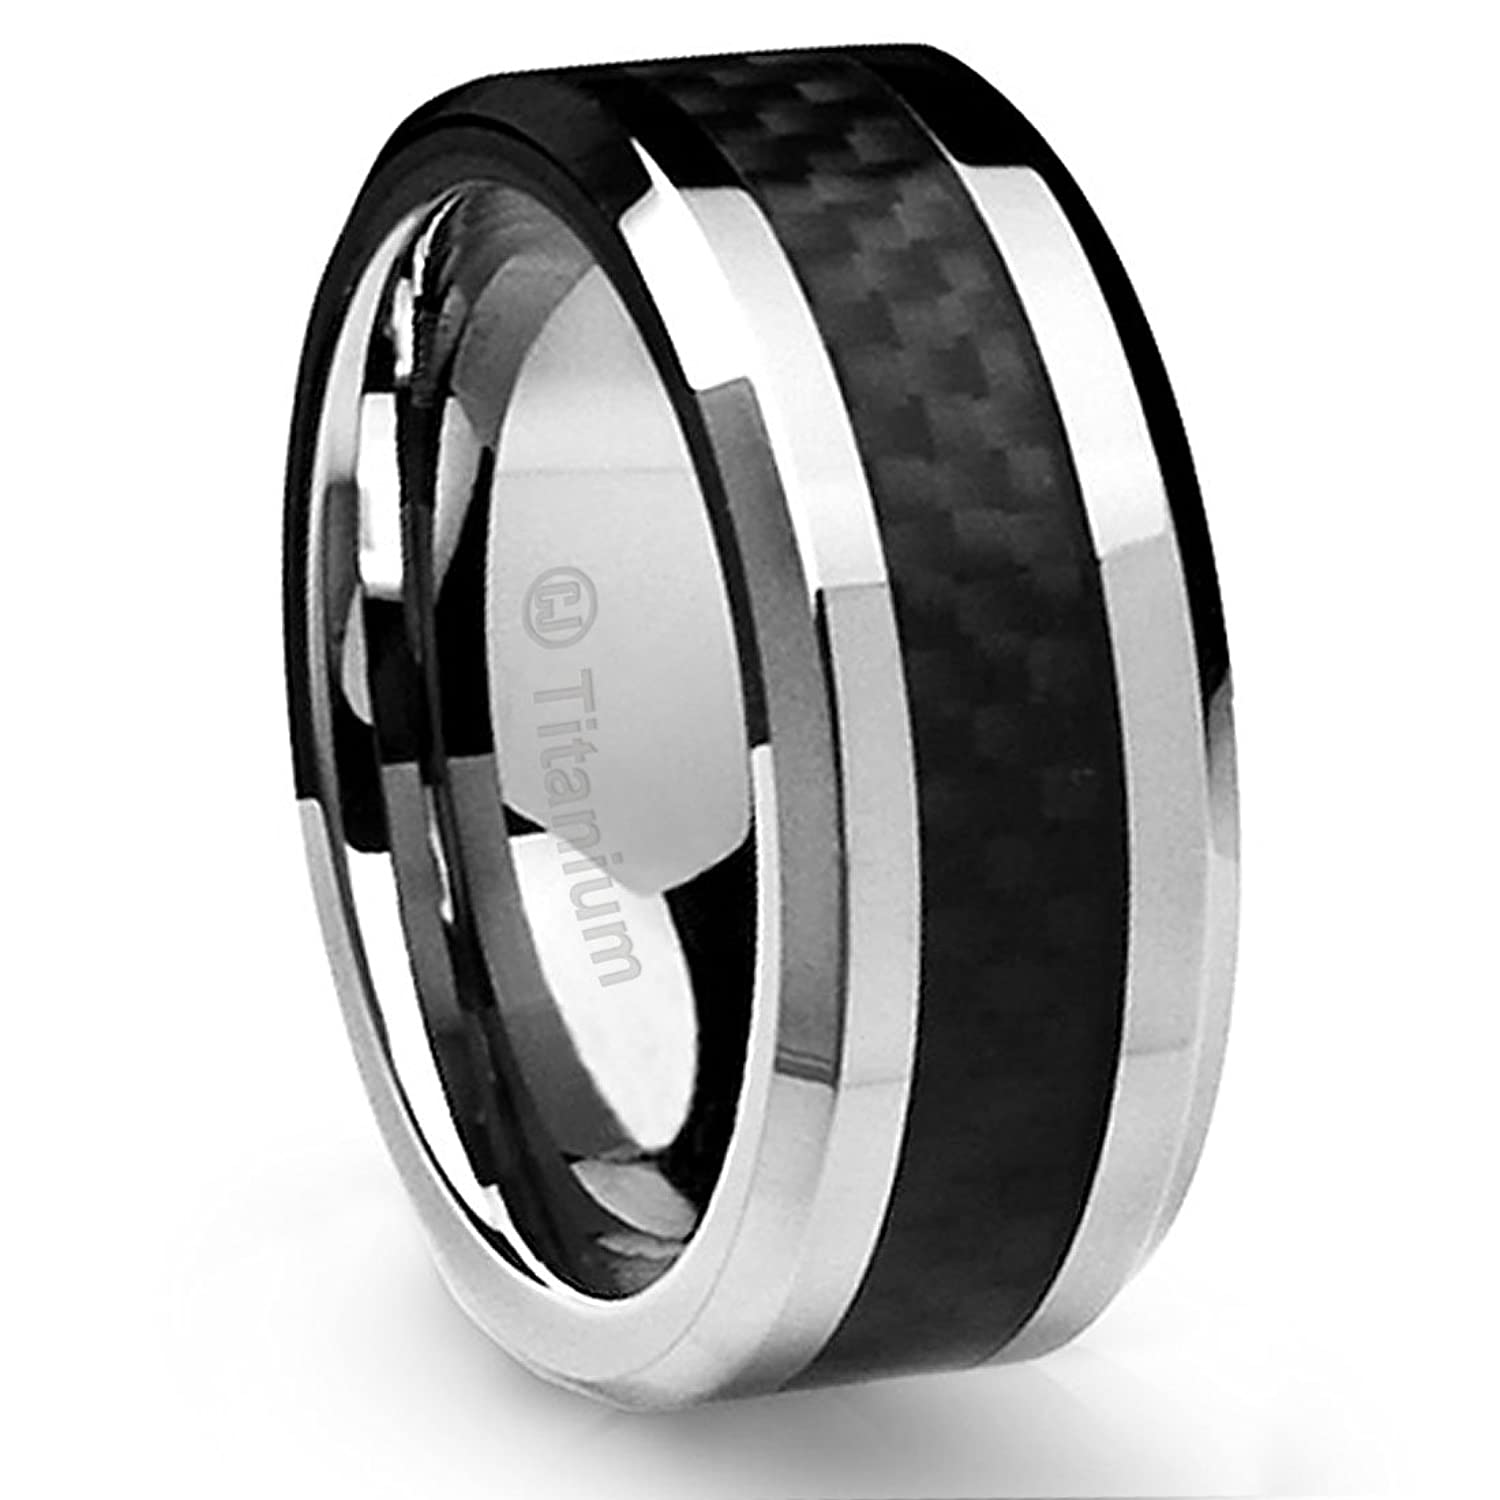 titanium wedding fashion rings ring engagement jewelry couple products evermarker steel az